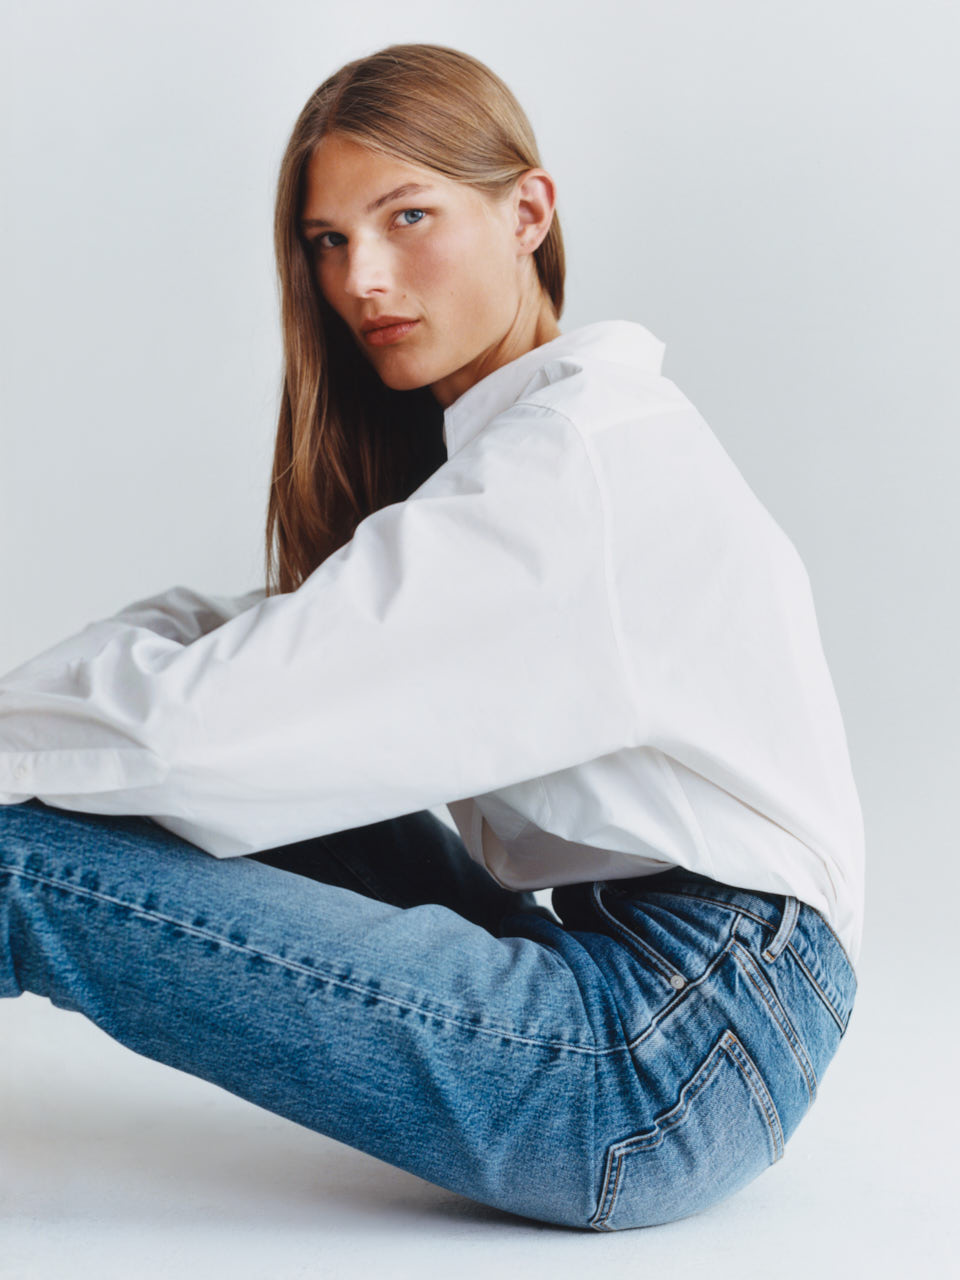 Female model wearing white shirt and blue jeans